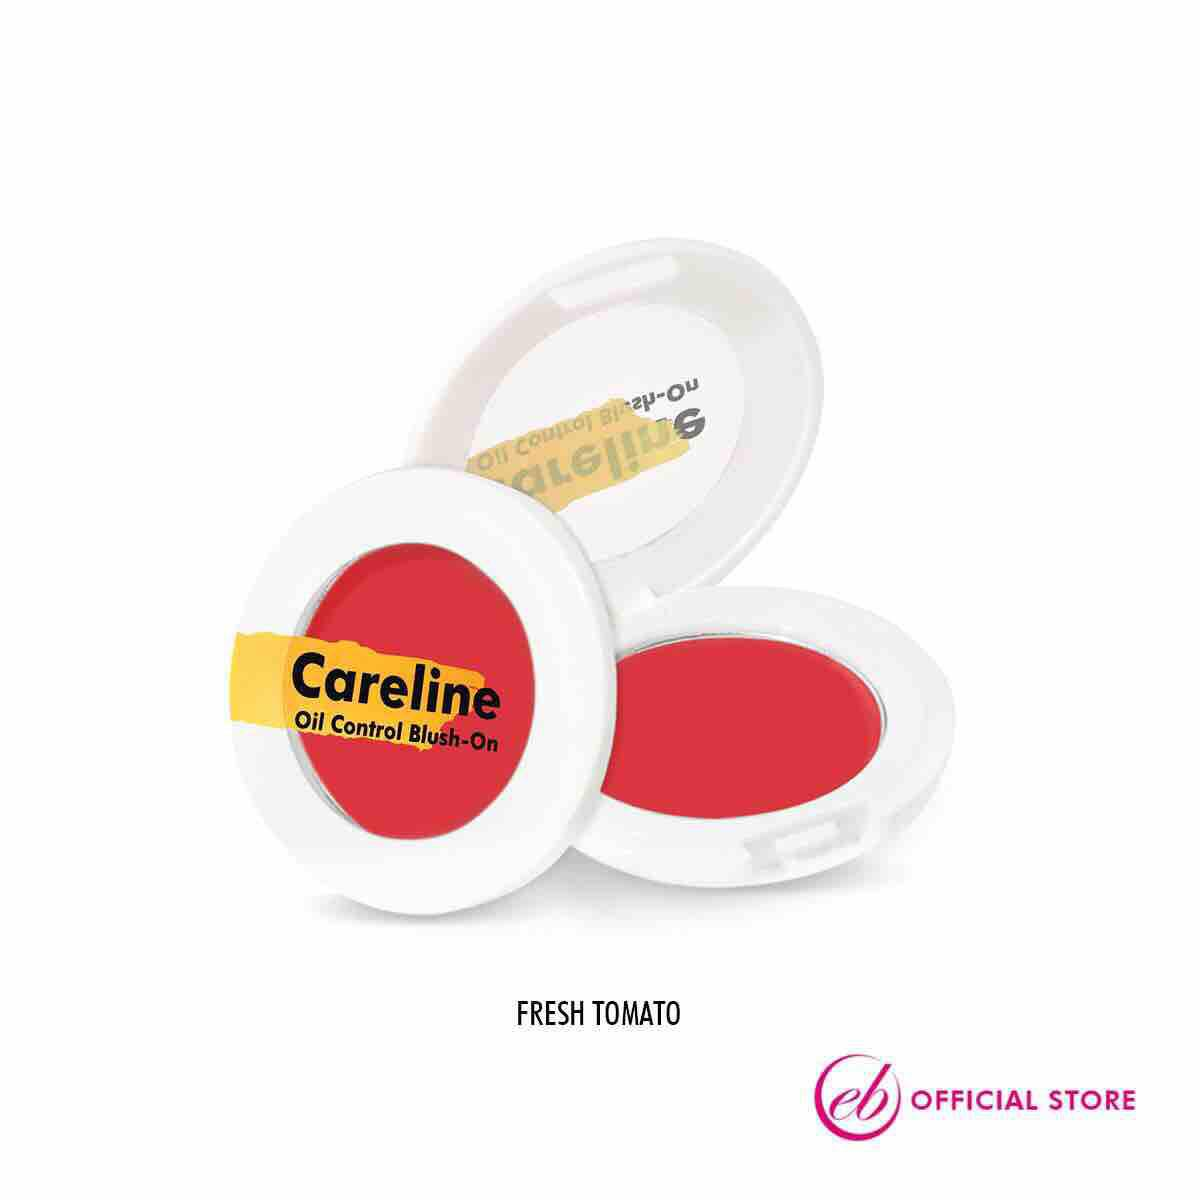 Careline Oil Control Blush-On Philippines